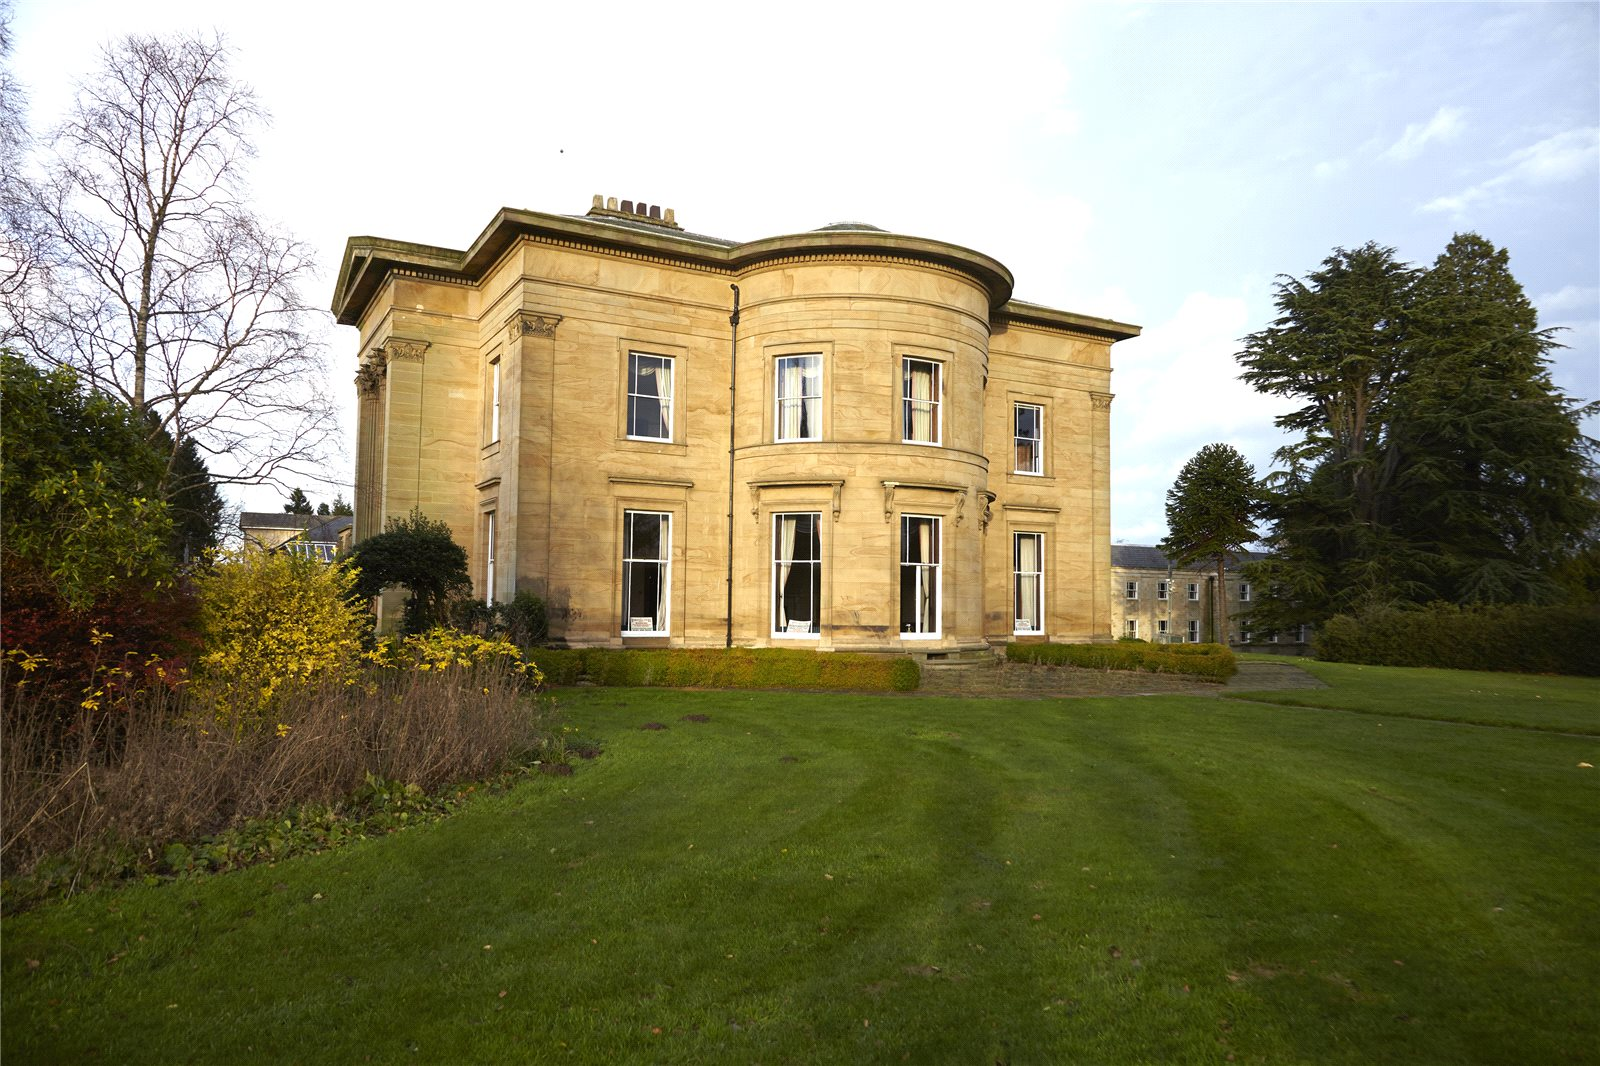 Additional photo for property listing at John Dobson Drive, Longhirst, Morpeth, Northumberland, NE61 Morpeth, Inglaterra